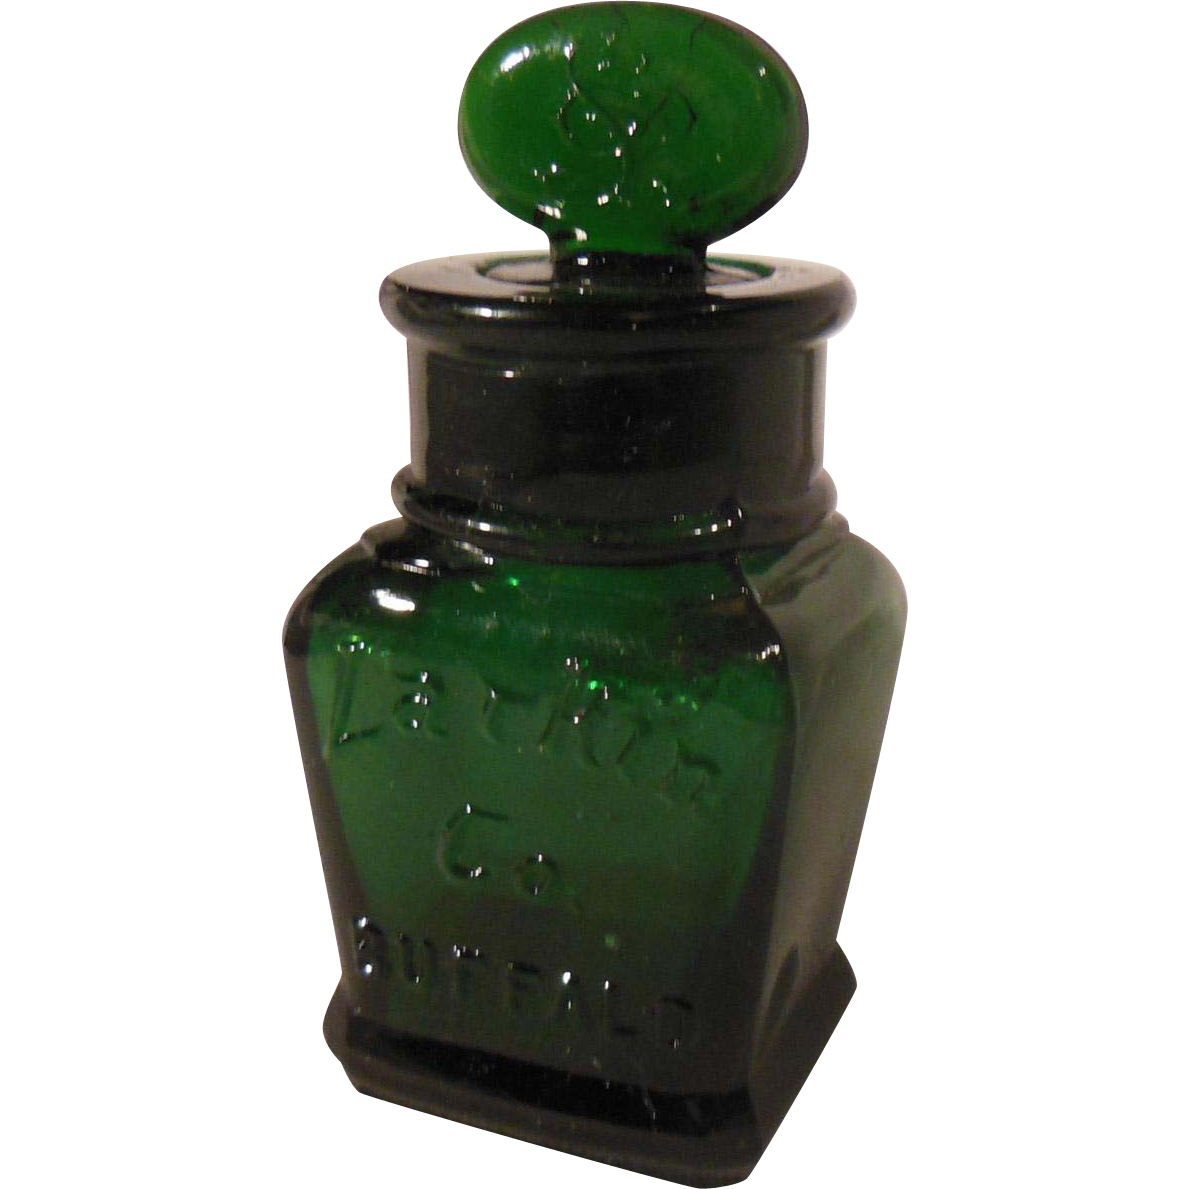 early small dark green larkin soap company bottle with stopper from pennycandyantiques on ruby lane